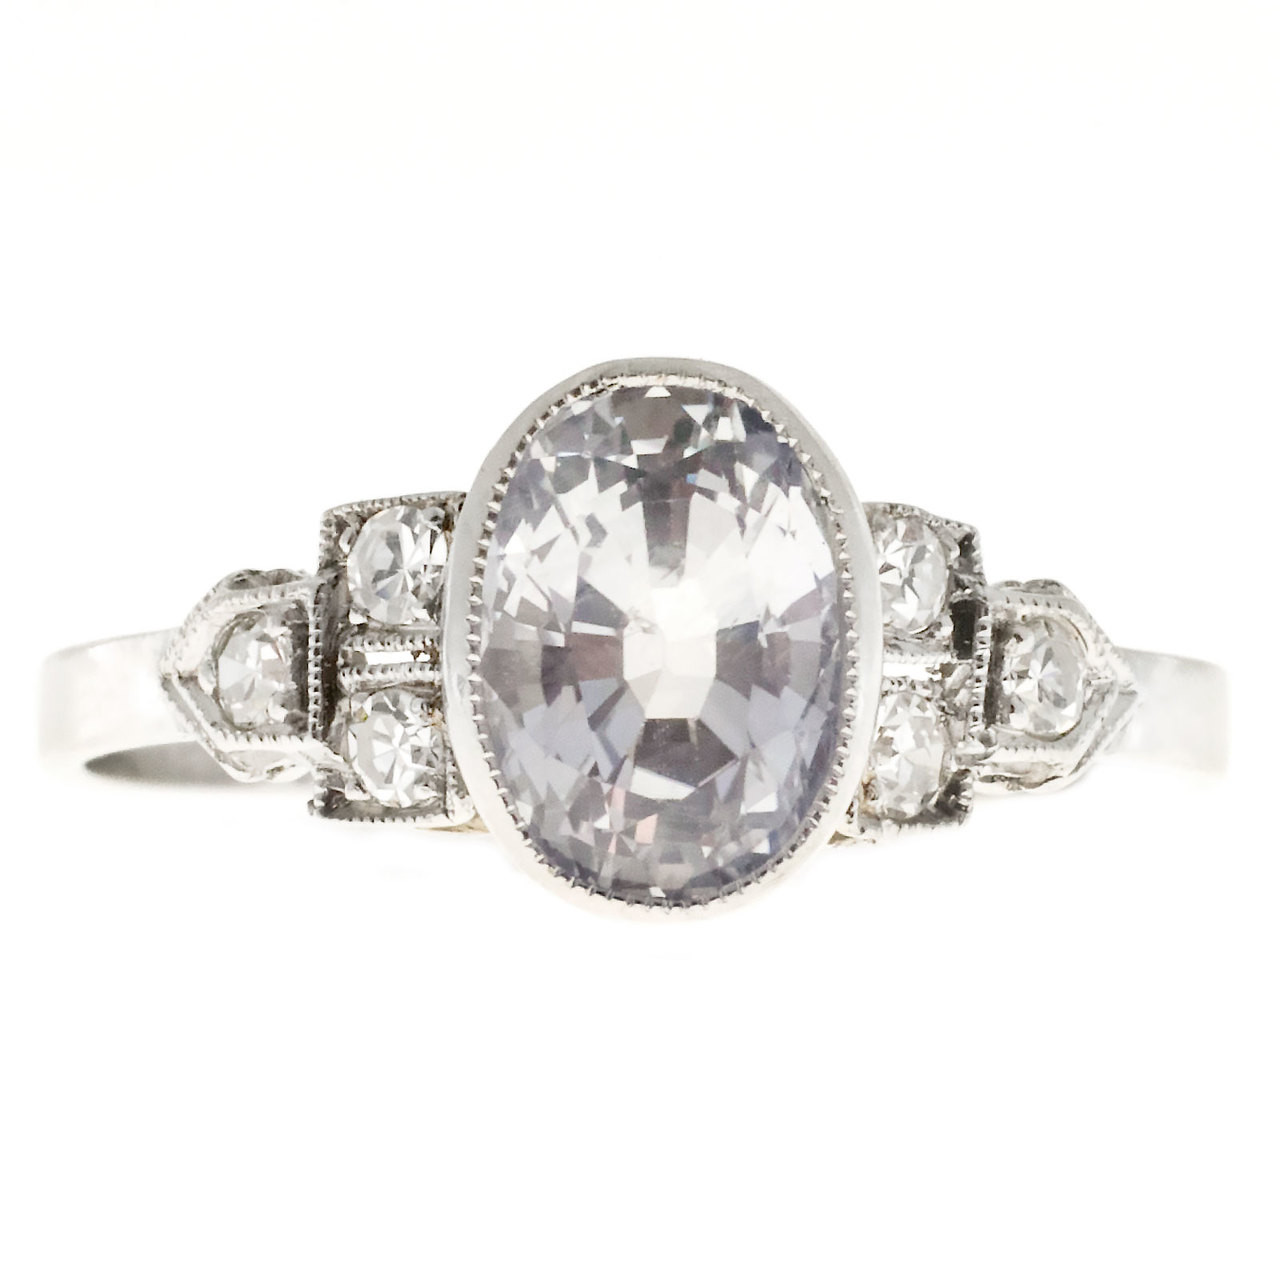 Antique Art Deco 2 06ct Near Colorless Sapphire Engagement Ring petersuchyj